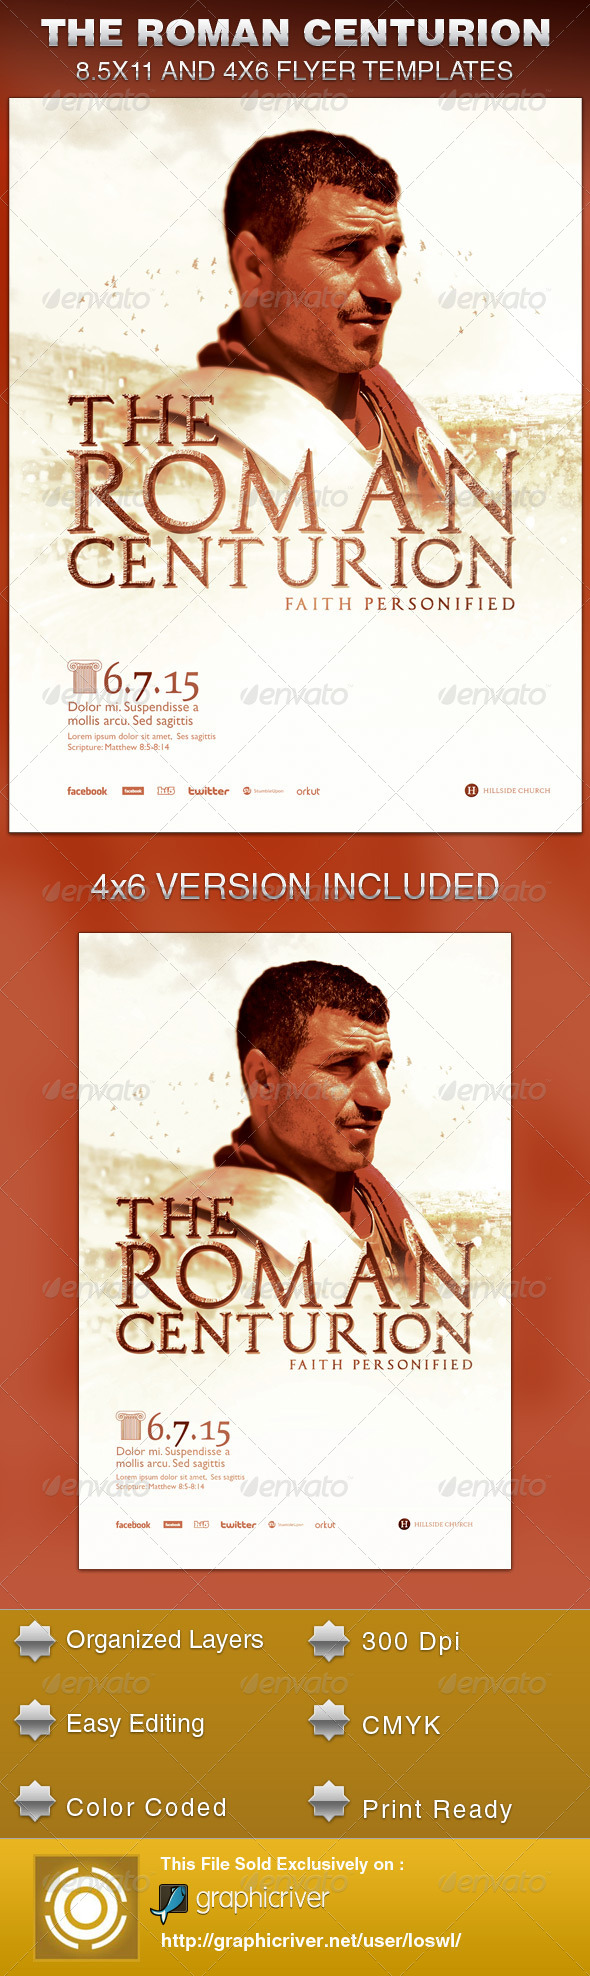 GraphicRiver The Roman Centurion Church Flyer Template 6307330